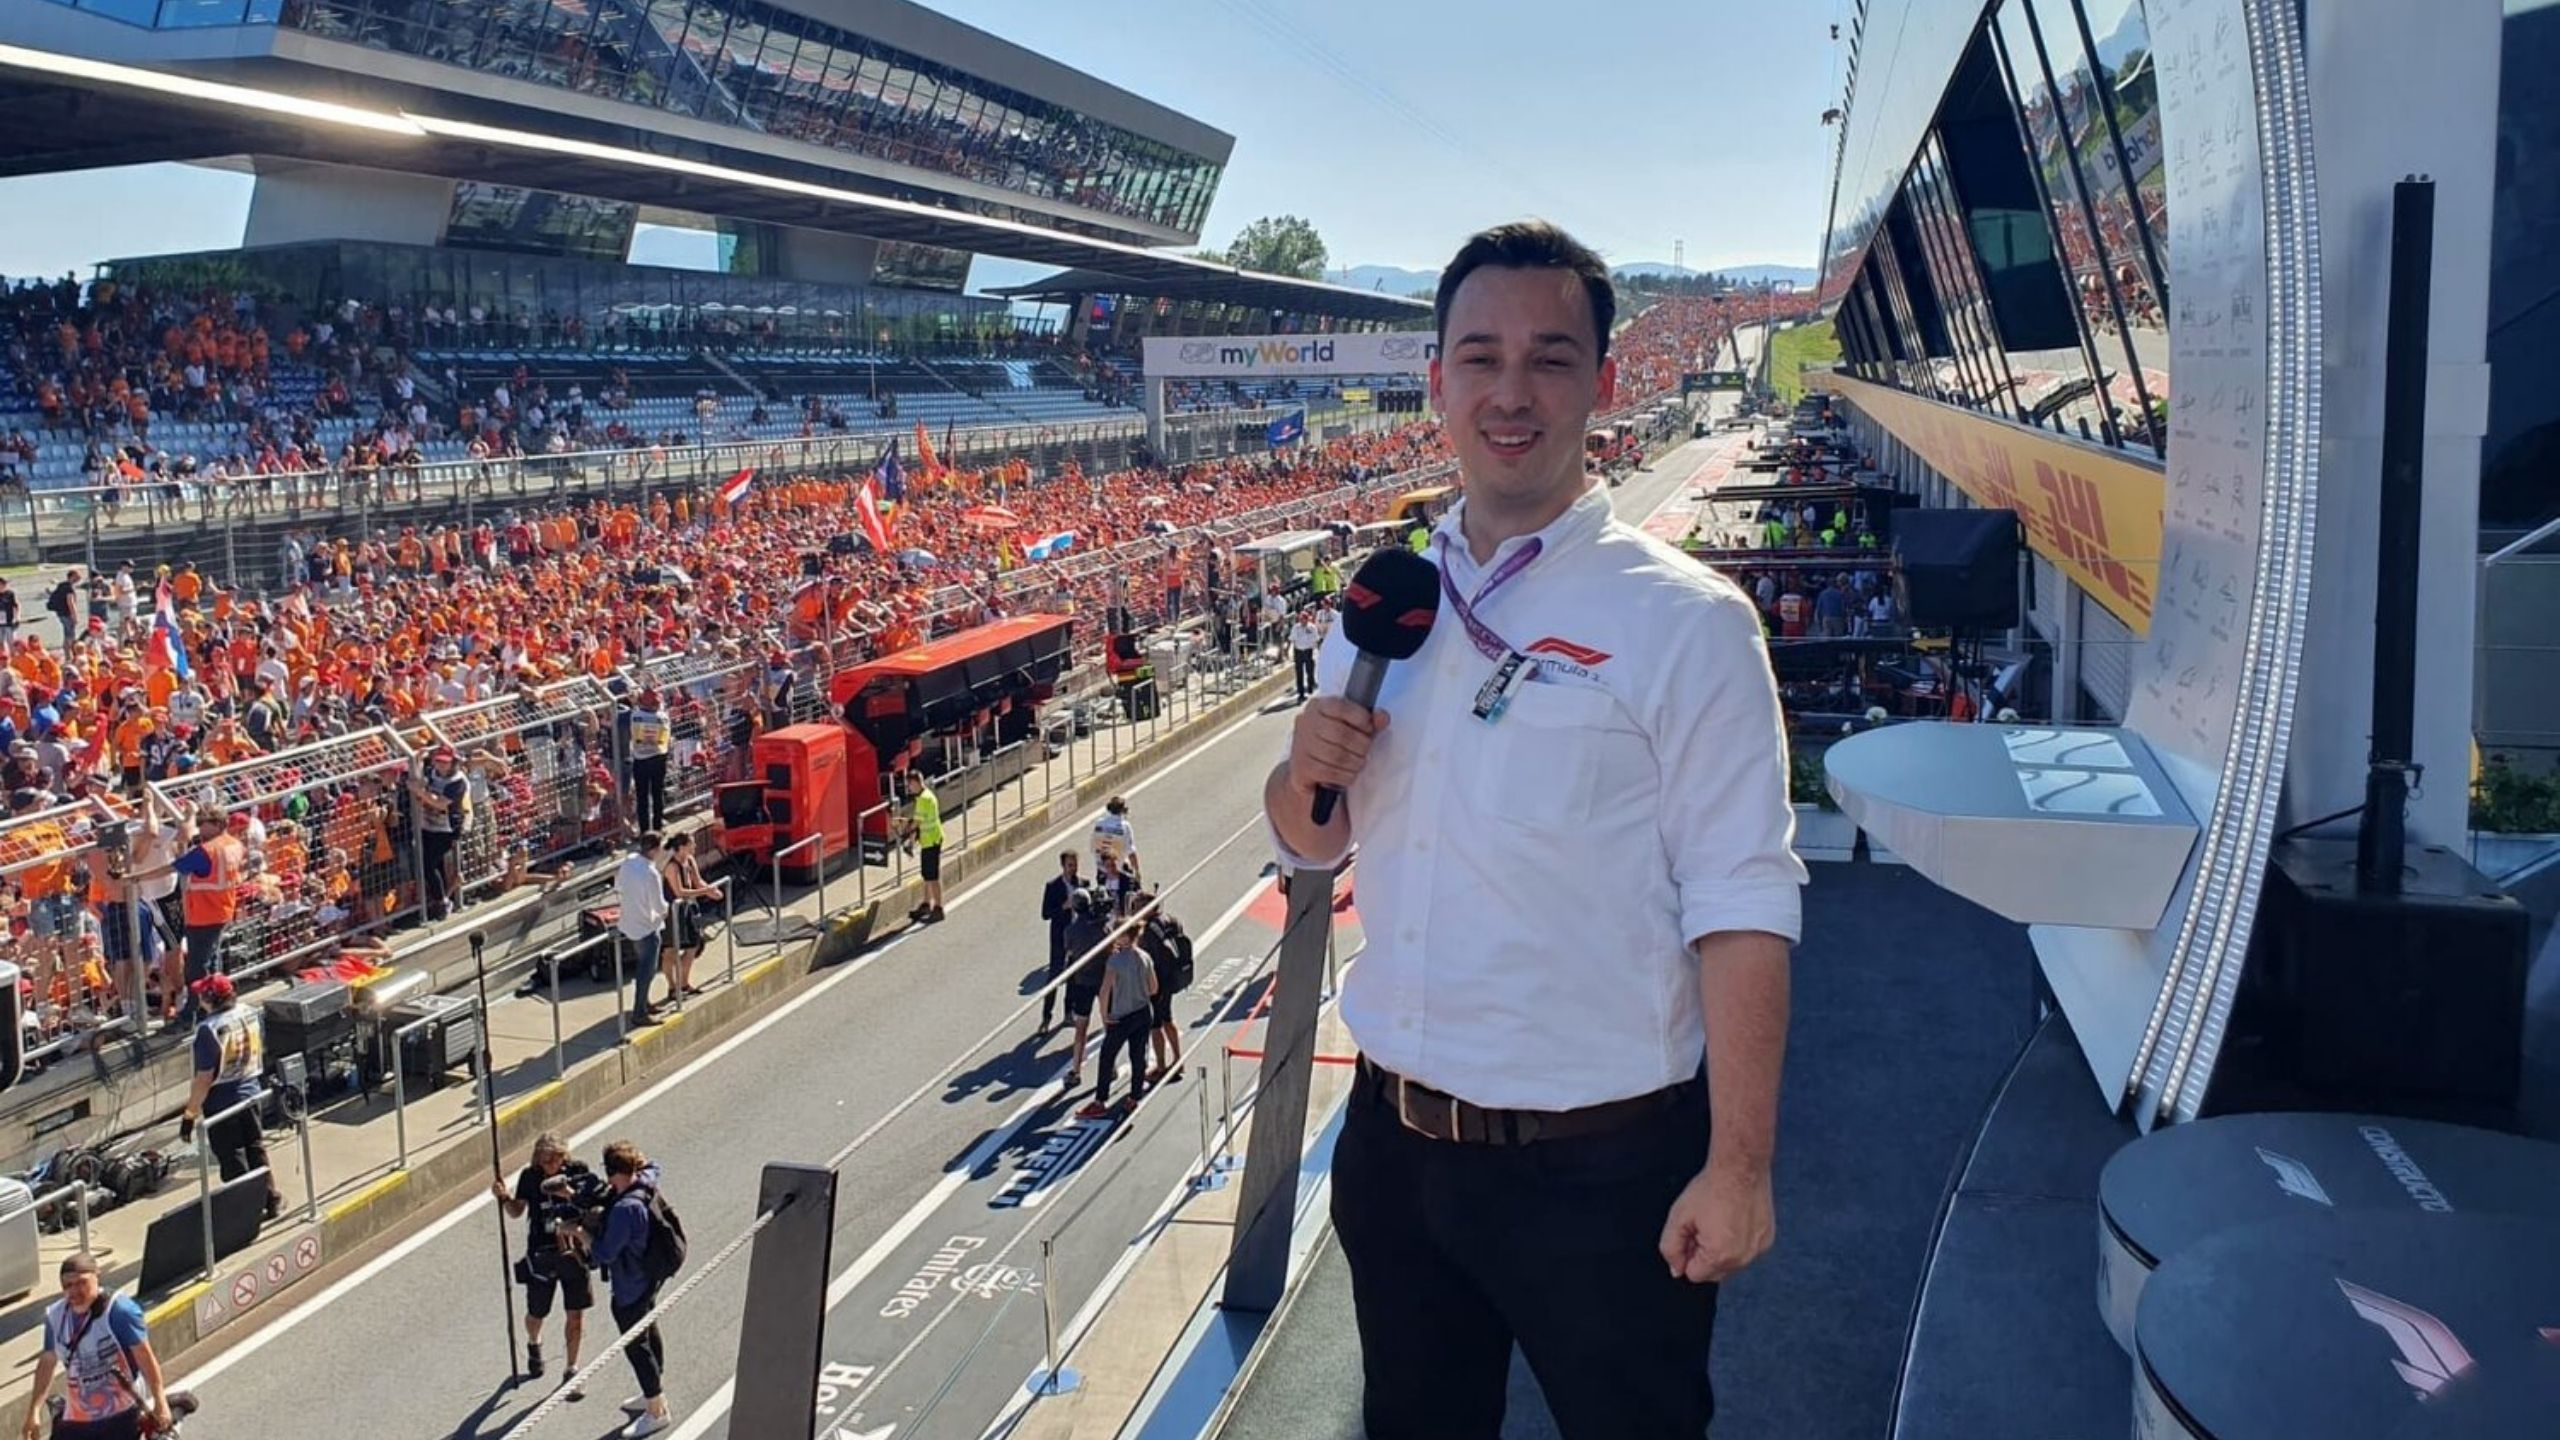 Channel 4 announces Alex Jacques as the new lead F1 commentator for the 2021 season, will replace Ben Edwards